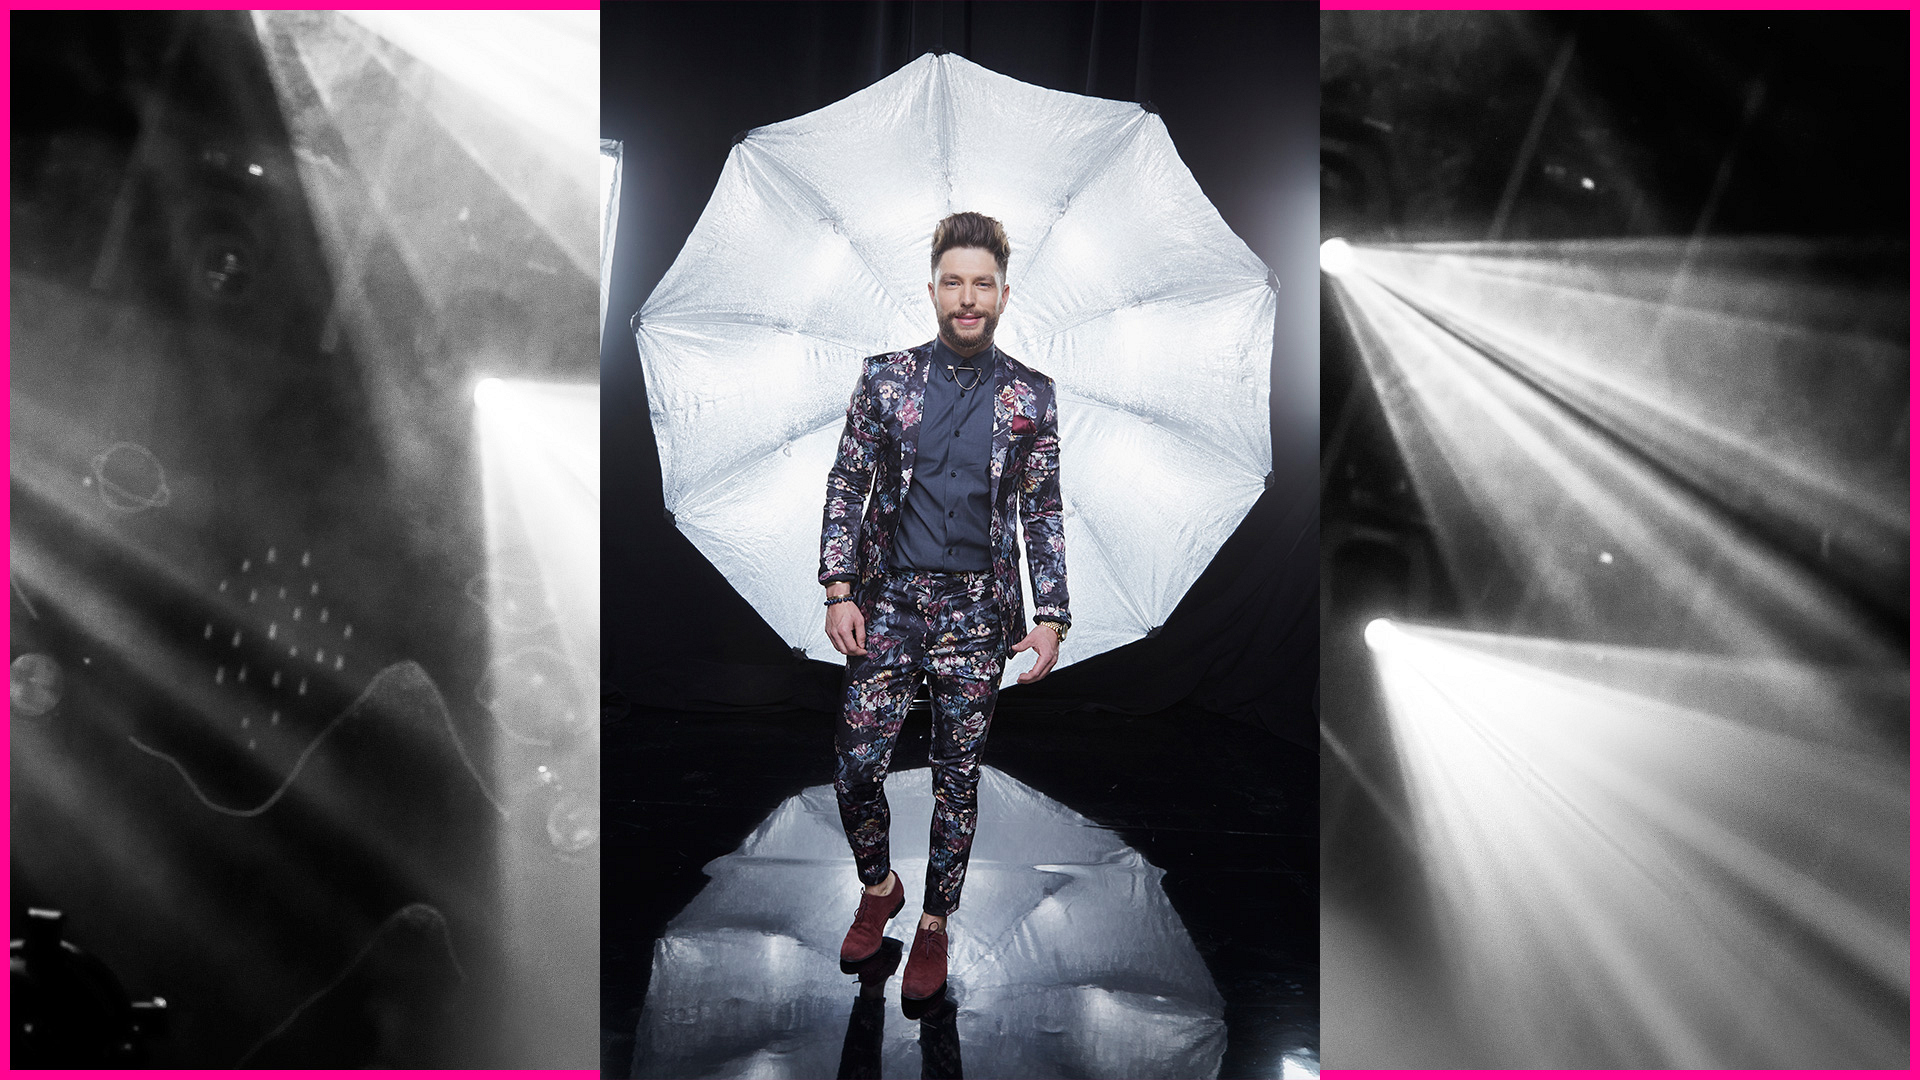 Country star Chris Lane is ready to stop Vegas traffic in this eye-catching floral suit.